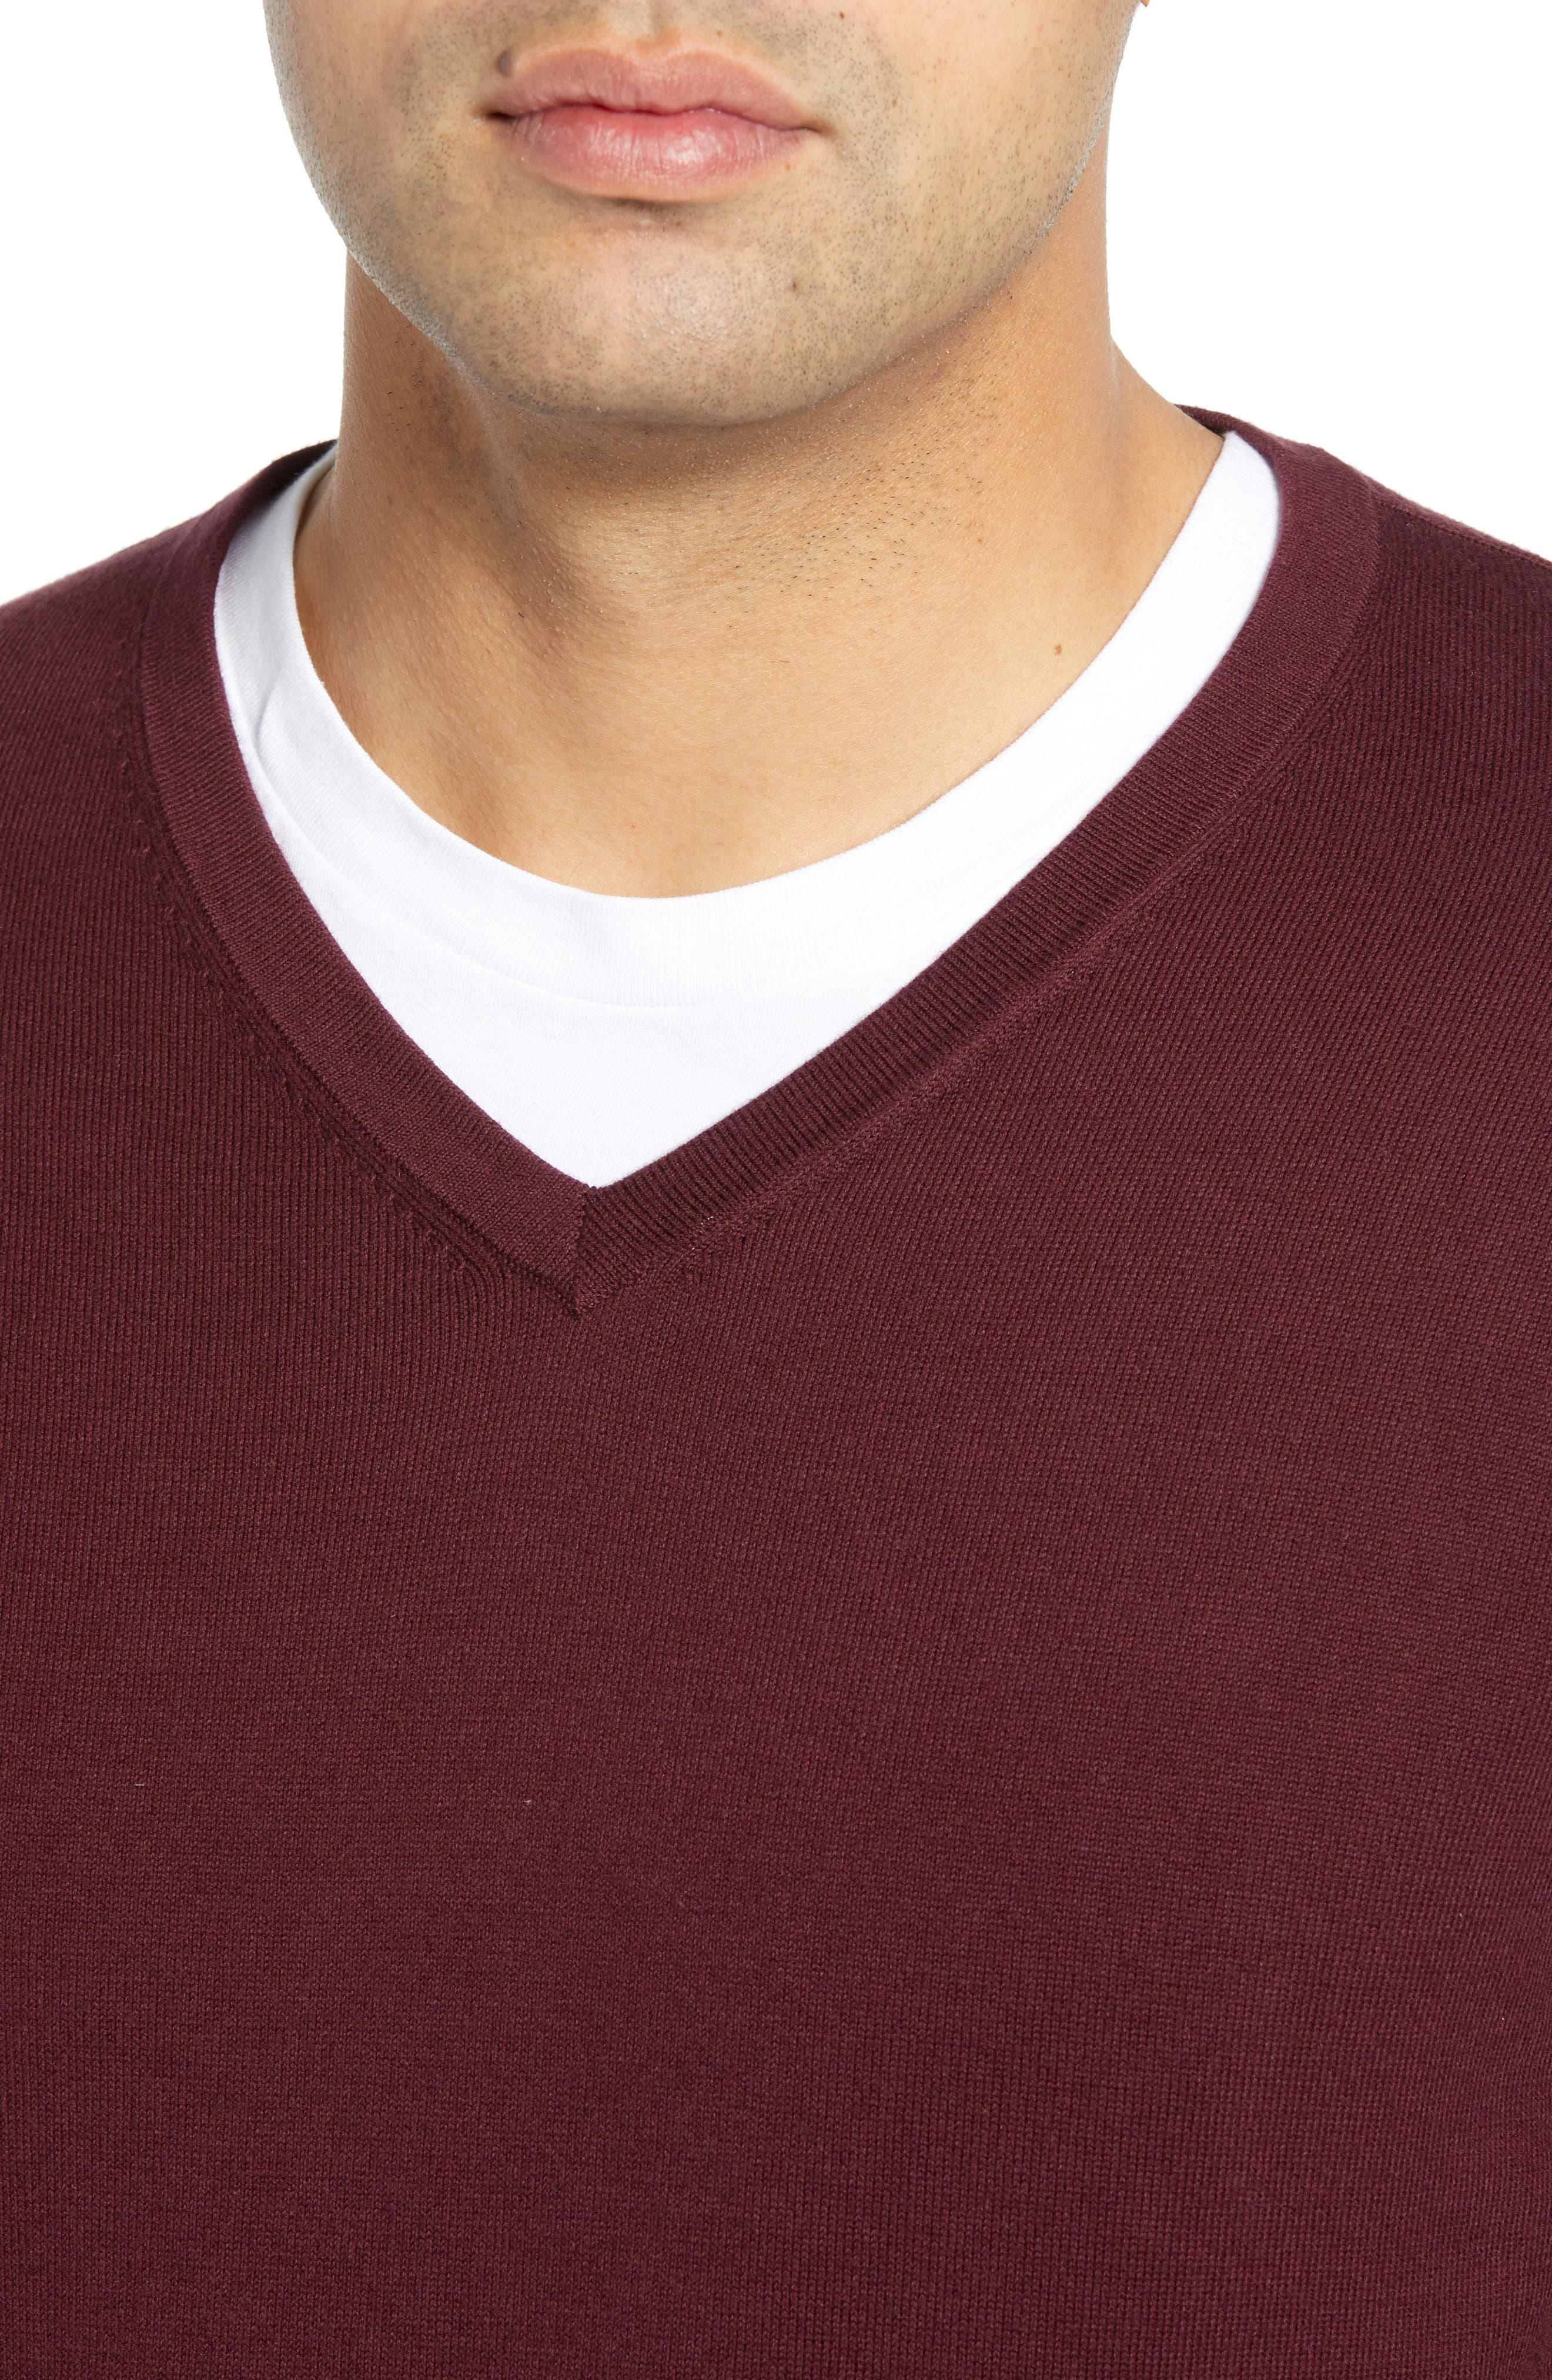 CUTTER & BUCK, Lakemont V-Neck Sweater, Alternate thumbnail 4, color, BORDEAUX